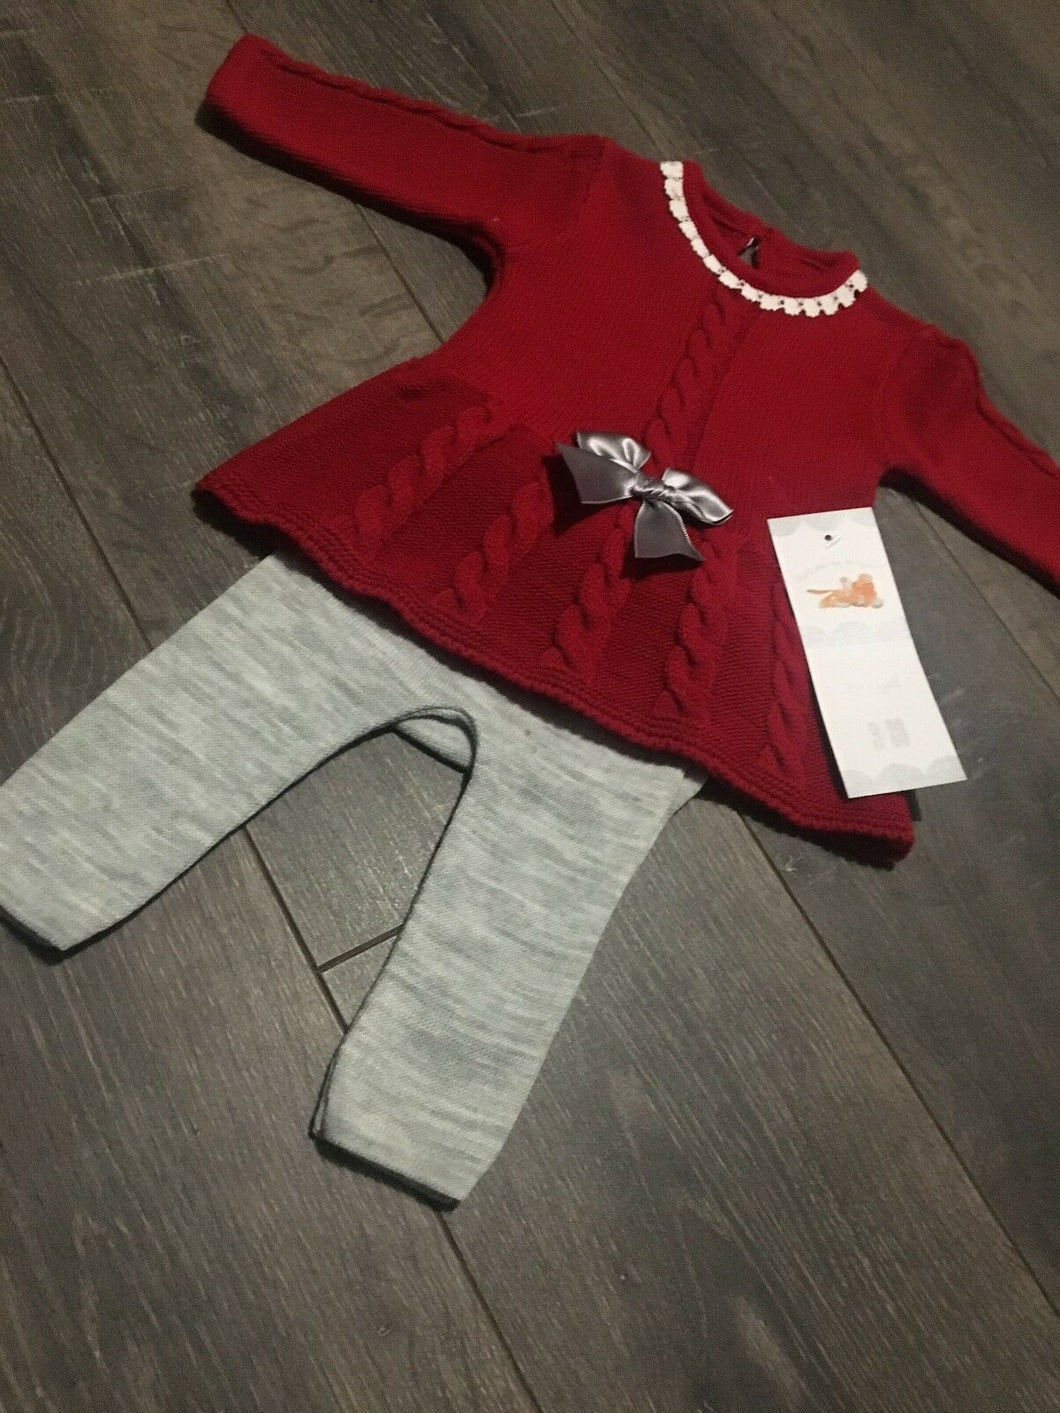 Baby Girl's Spanish Style Knitted Dress with Bow & Leggings in Red & Grey